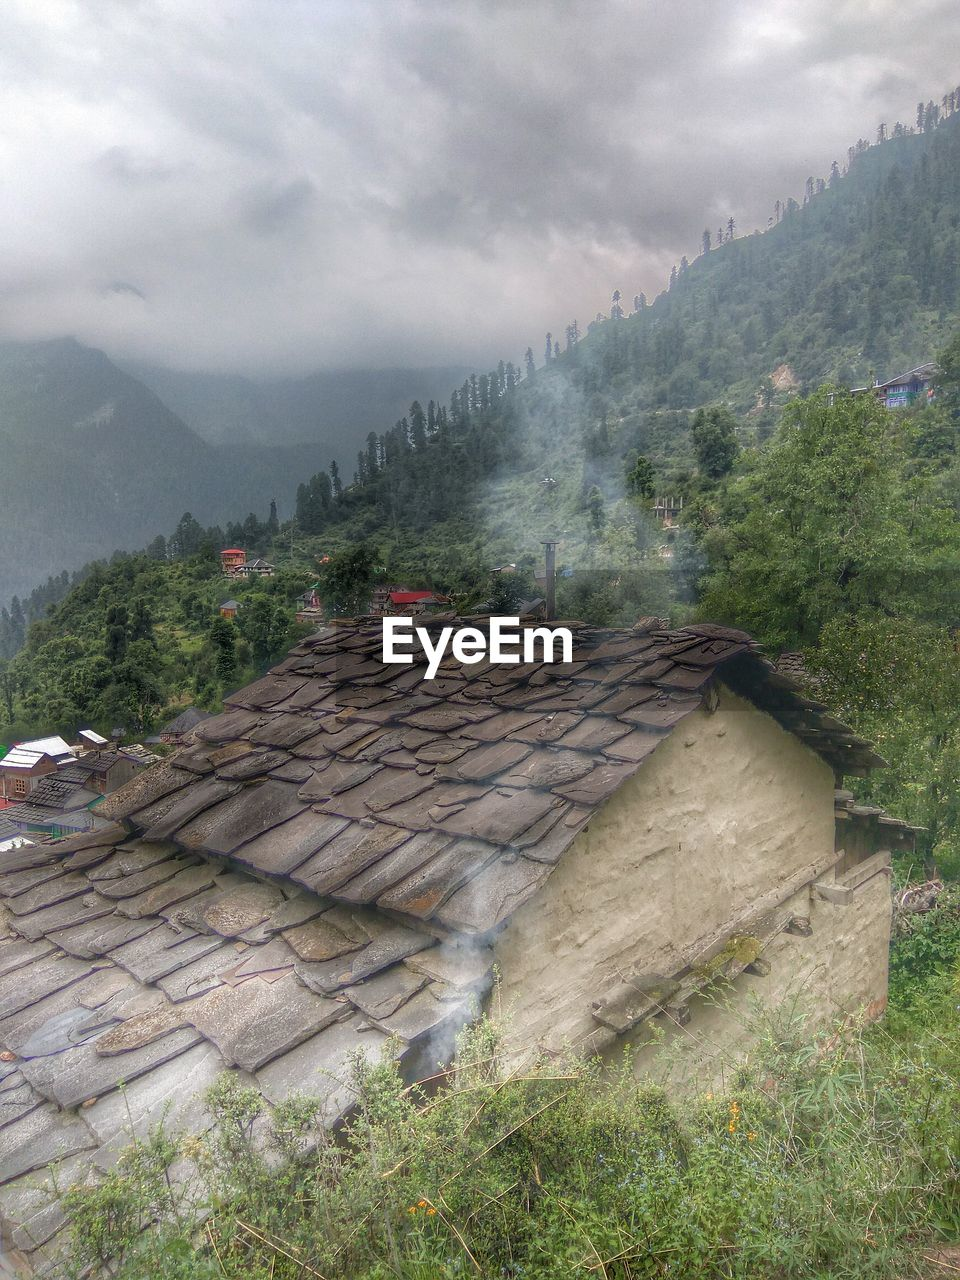 mountain, day, weather, no people, architecture, built structure, tree, nature, outdoors, sky, roof, cloud - sky, beauty in nature, scenics, building exterior, growth, mountain range, water, tiled roof